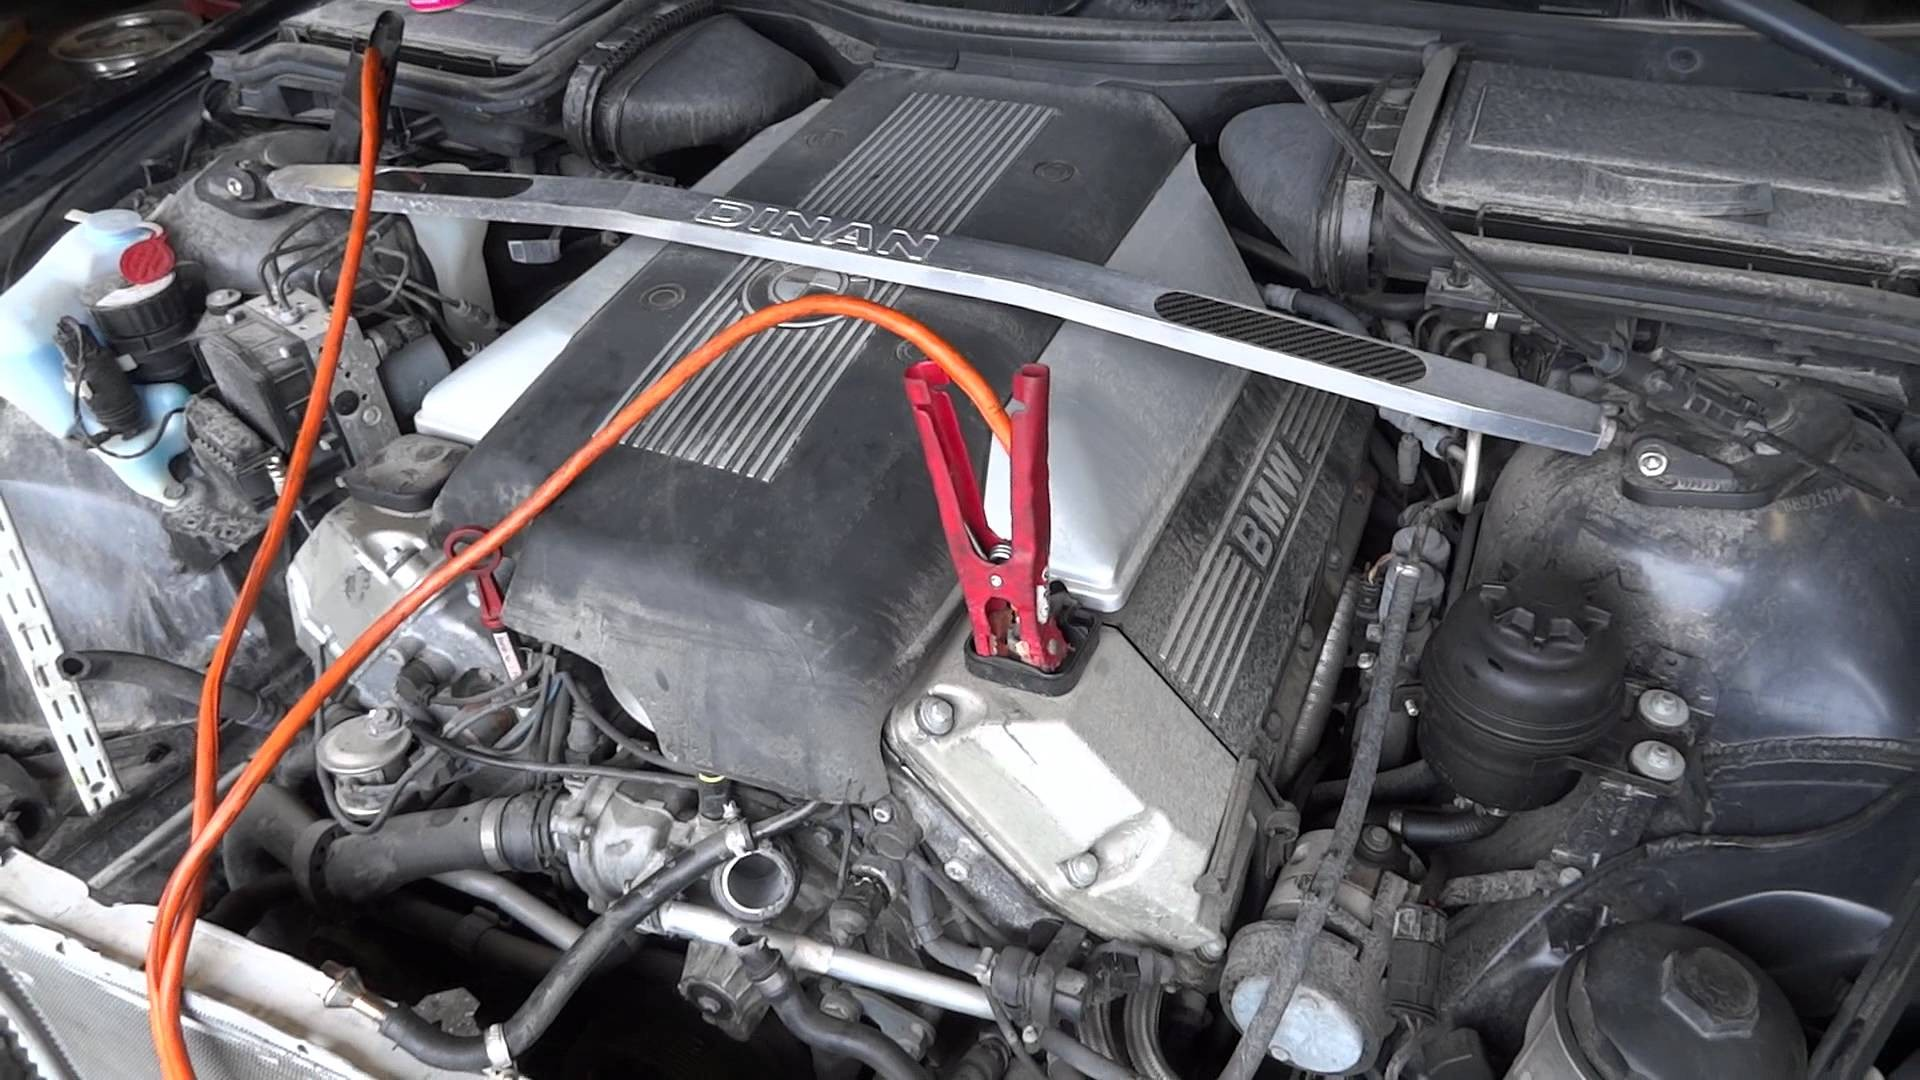 Bmw M60 Engine Wiring Harness Diagram Likewise On Bmw M60 Engine